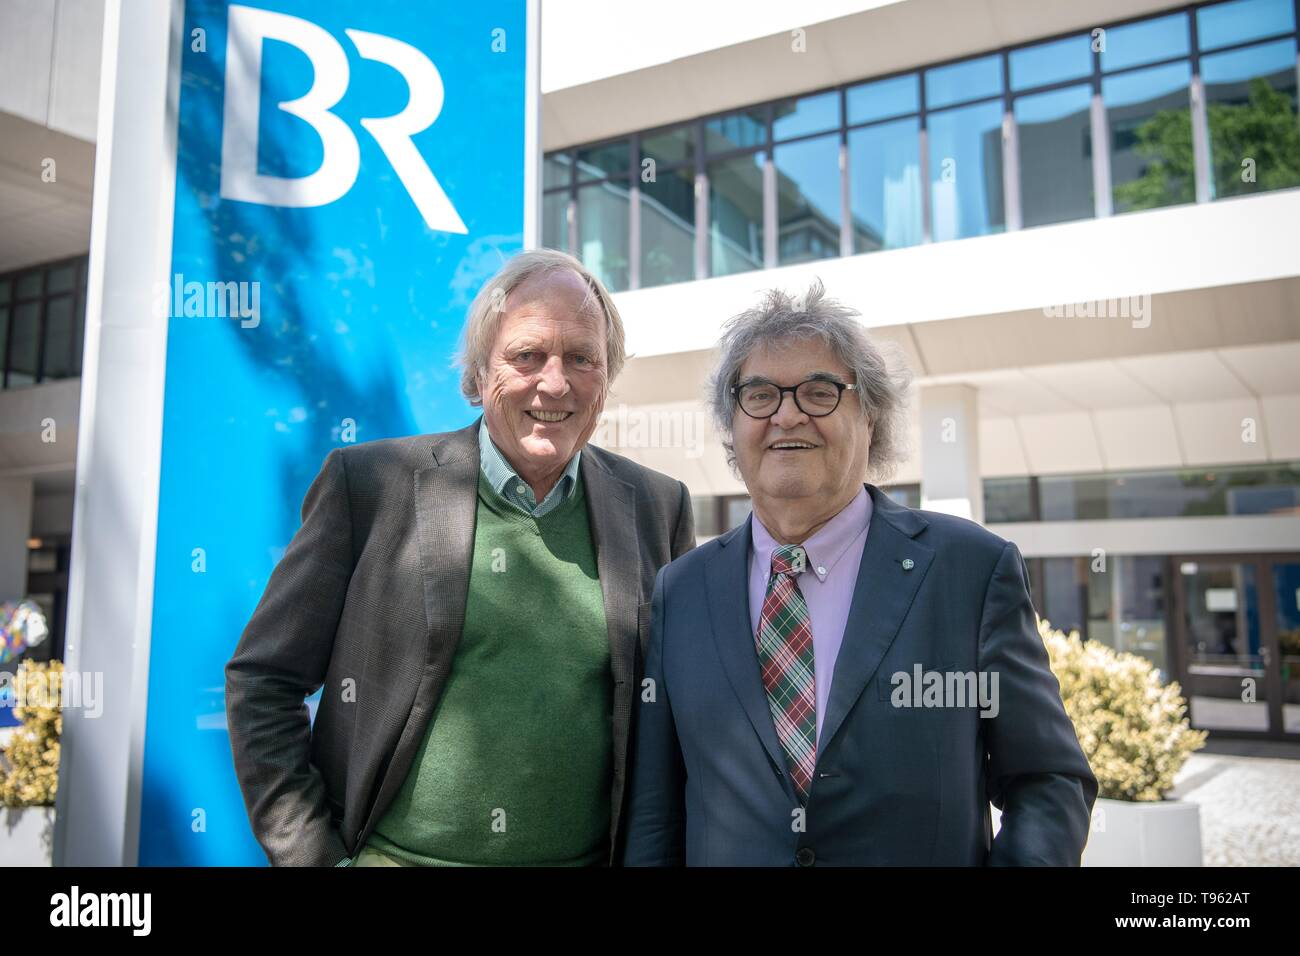 17 May 2019, Bavaria, Munich: Helmut Markwort (FDP, r), member of the state parliament, and Christoph Freiherr von Hutten, lawyer, stand in front of the building of the Bayerischer Rundfunk (BR). Actually, Markwort is named by the Landtag as one of twelve politicians for the supervisory board of Bayerischer Rundfunk (BR). But the Broadcasting Council had rejected the media entrepreneur as a new member after the state elections - among other things because of possible conflicts of interest due to Markwort's shareholdings and business activities with private radio stations. Photo: Sina Schuldt/d - Stock Image